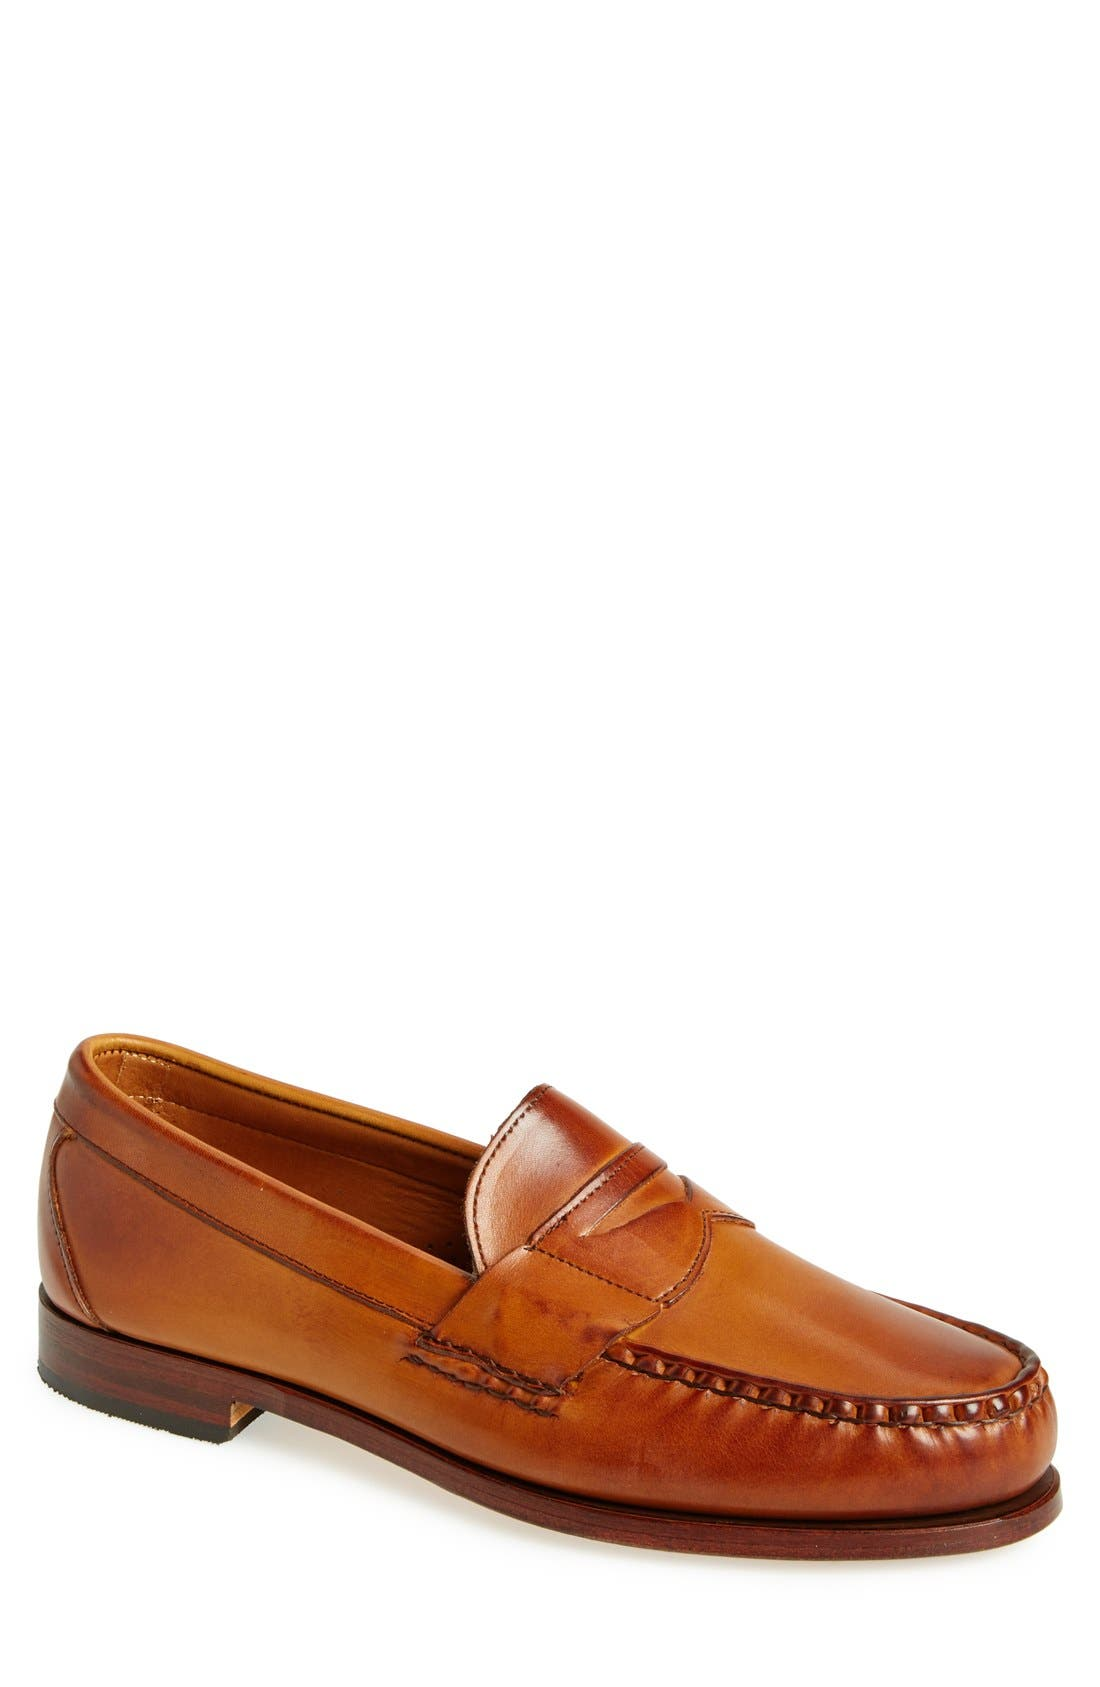 'Cavanaugh' Penny Loafer,                             Main thumbnail 1, color,                             WALNUT LEATHER